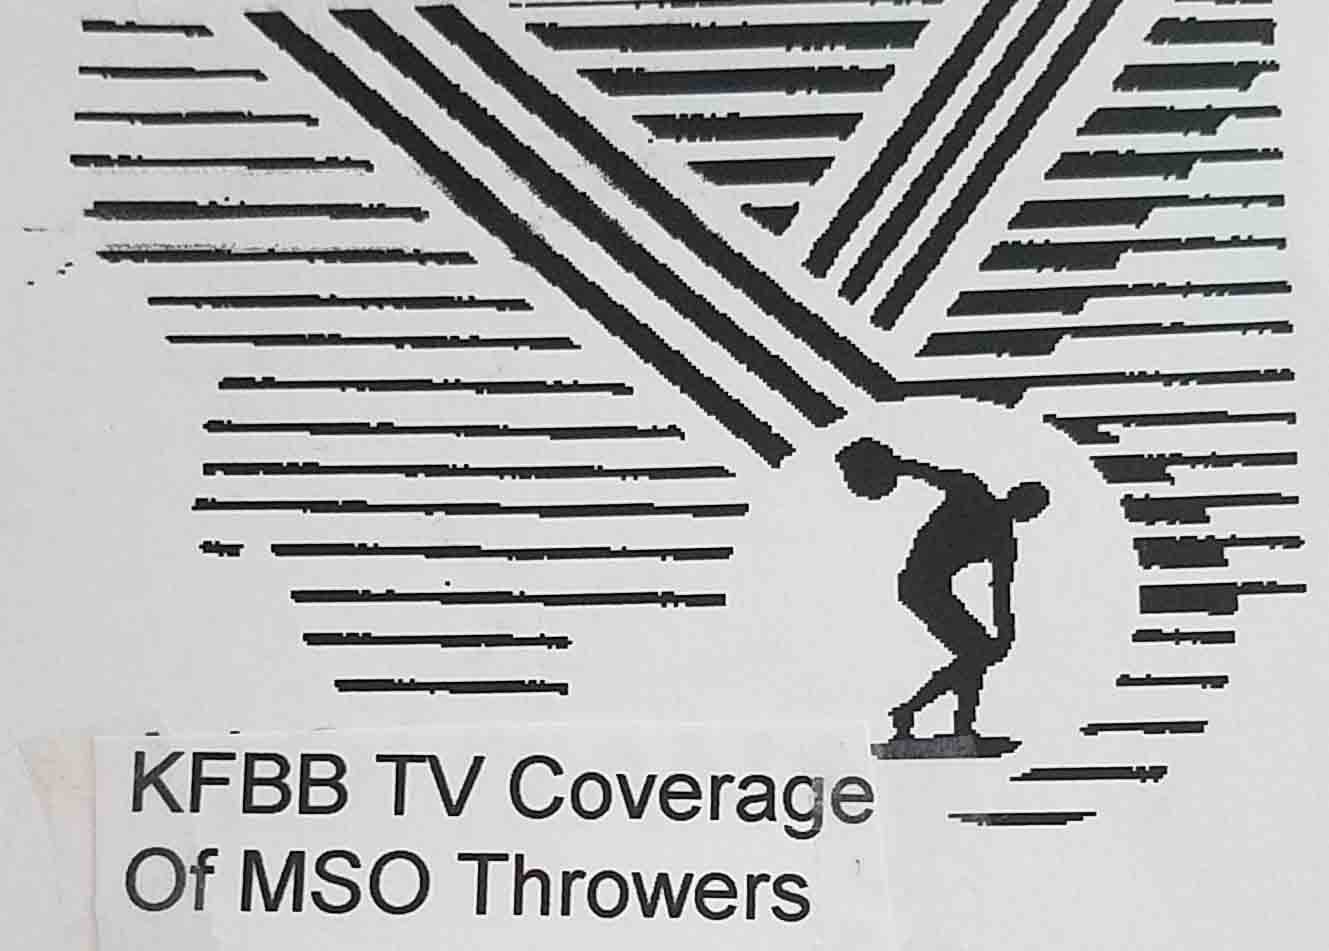 Great coverage of the throws from KFBB Great Falls